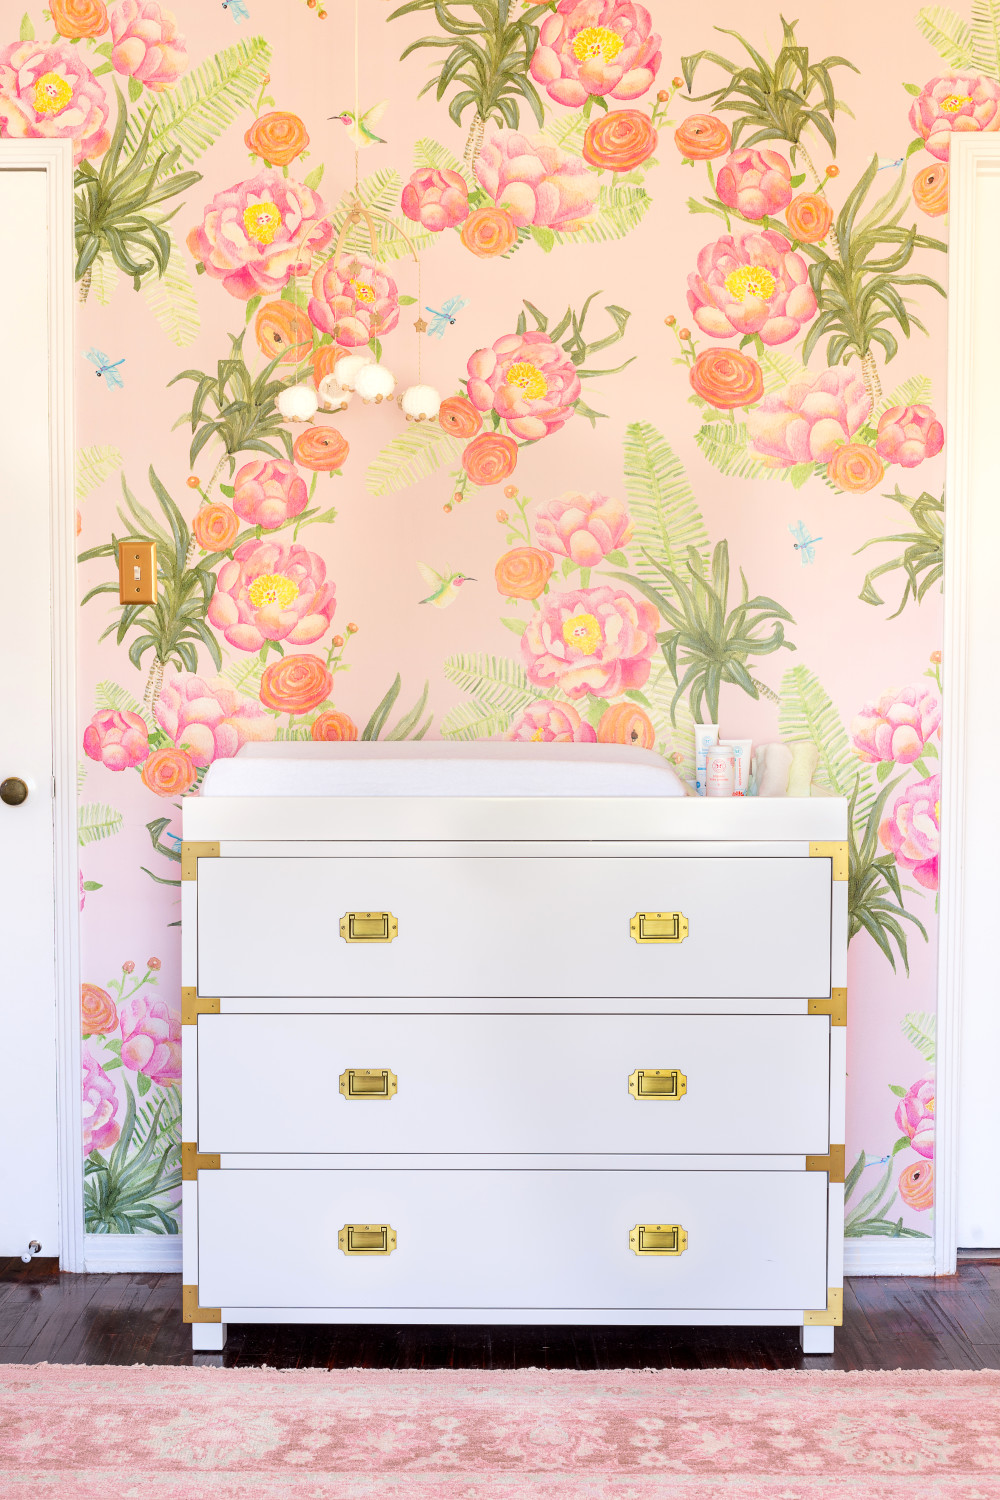 lulu_georgia_nursery-crib_changing_table-1000x1500.jpg